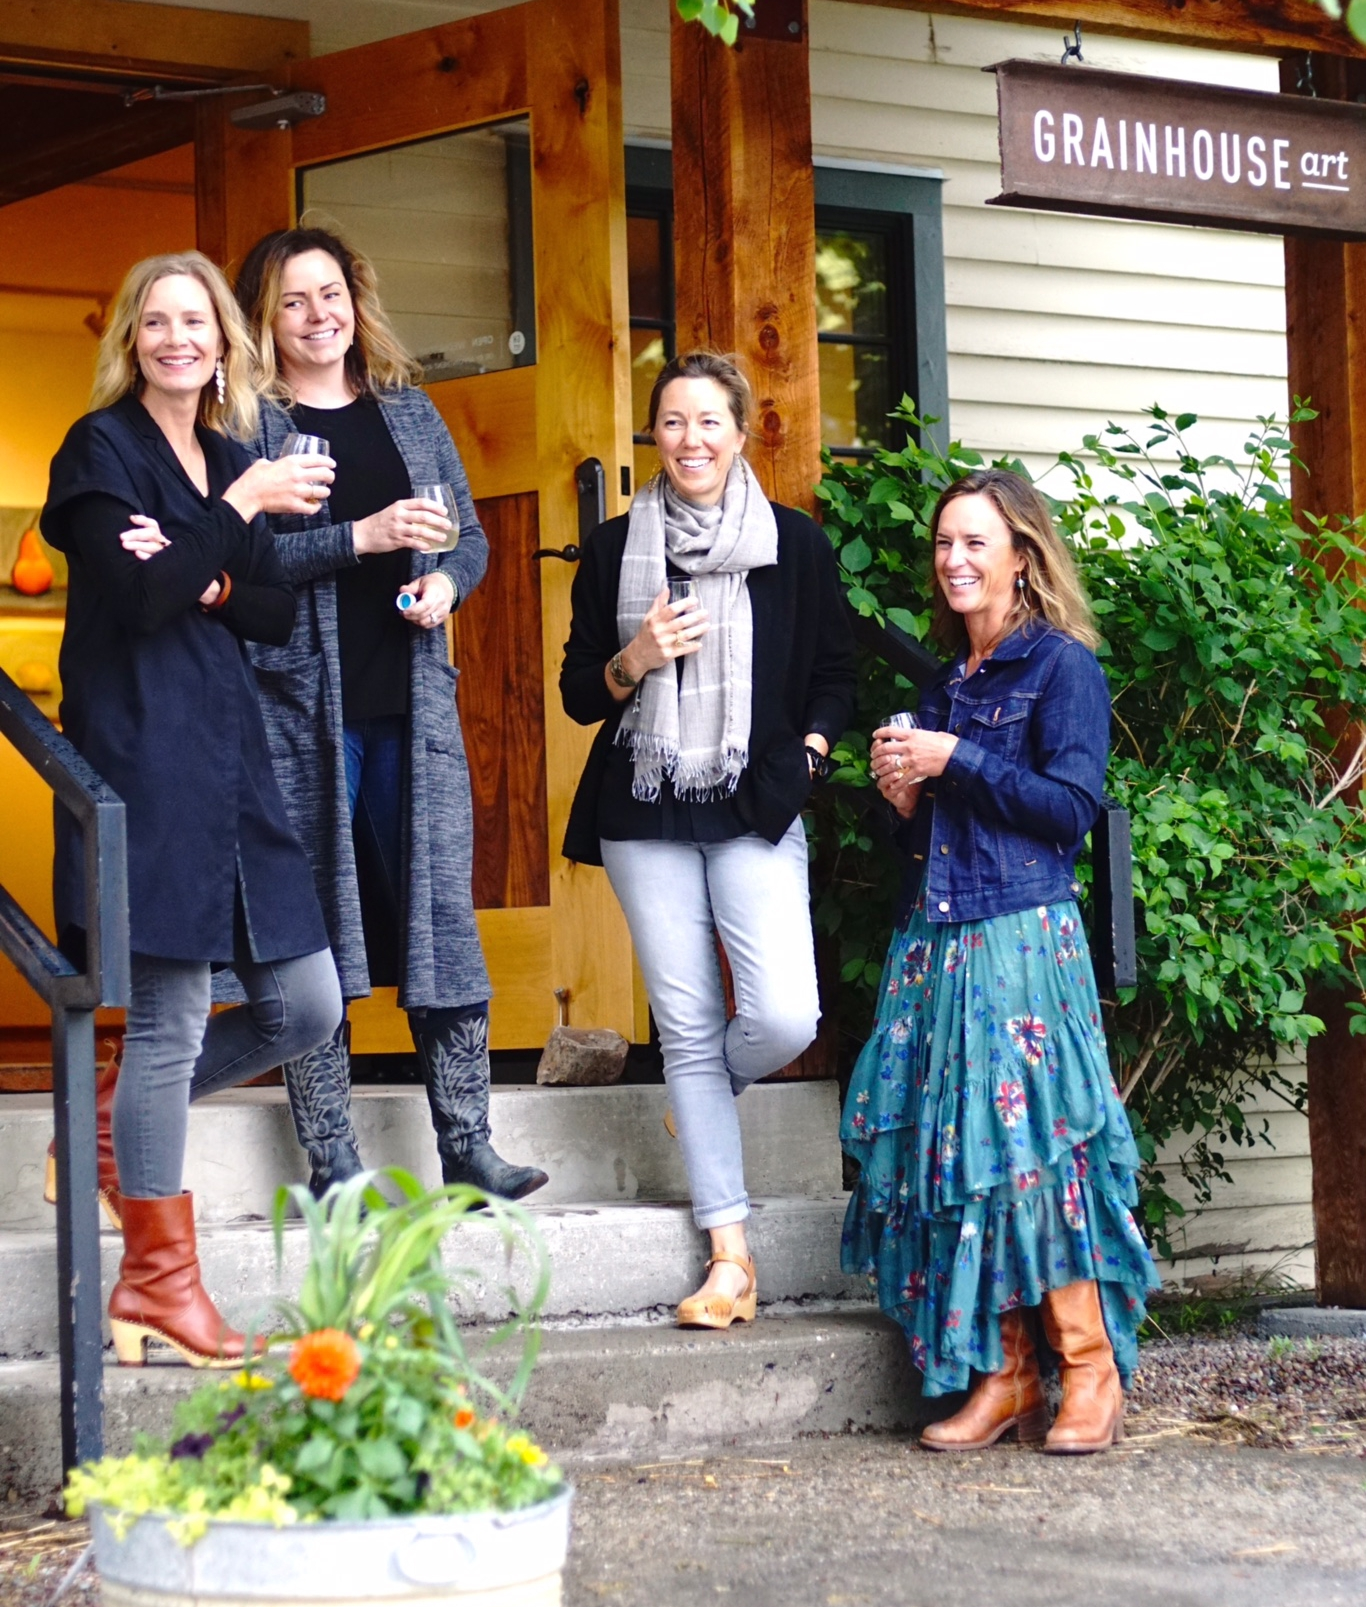 Grainhouse Art founding partners, from left to right: Molly Stratton, Laurel Hatch, Anna Patterson, & Elizabeth McRae.